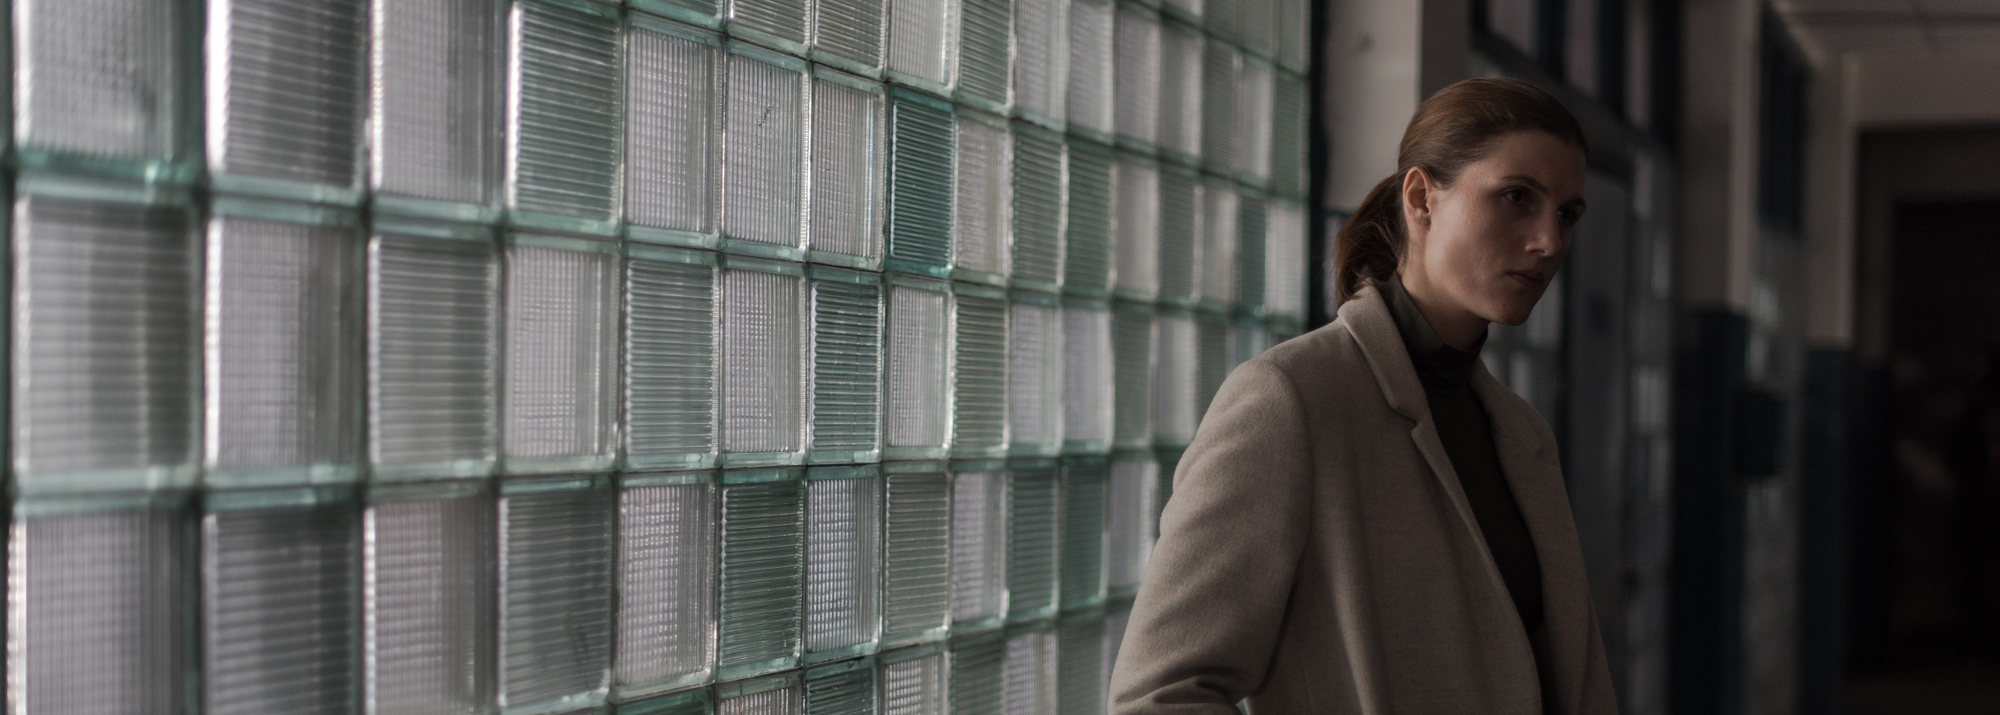 Andrey Zvyagintsev returned to Cannes with his new film  Loveless and bagged the Jury Prize.